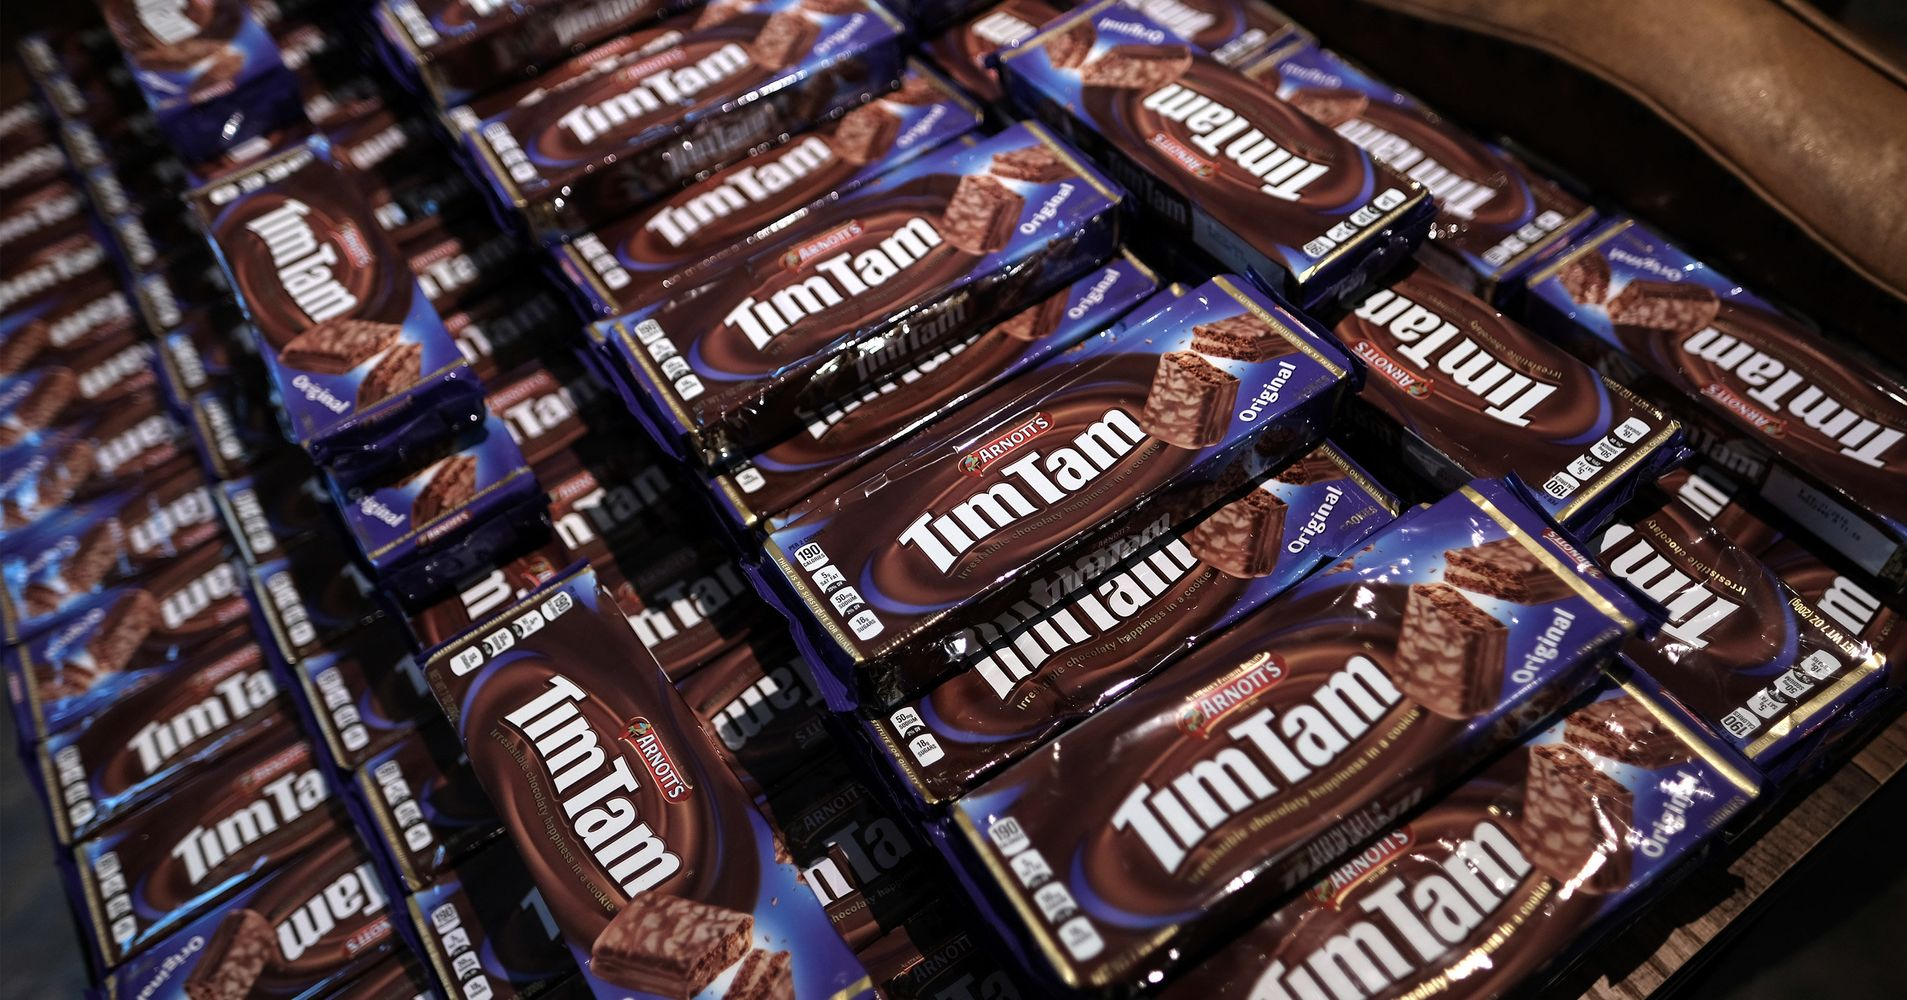 Tim Tams, Your Favorite Australian Snack, Are Finally Available In ...